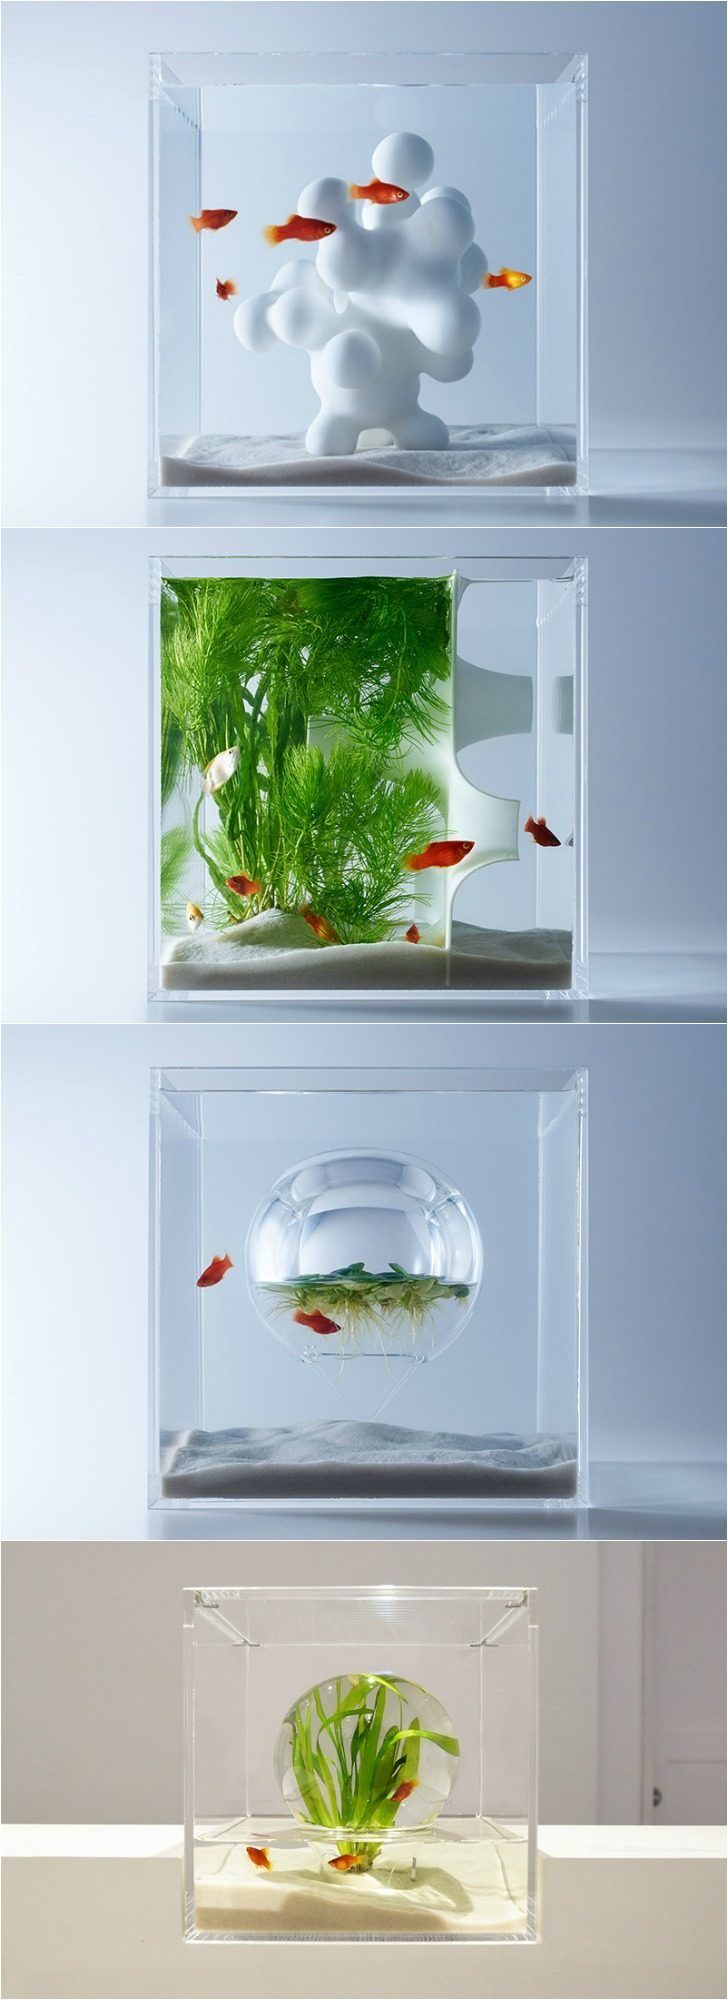 artistic aquariums from haruka misawa diy project pinterest aquarium fish tank and. Black Bedroom Furniture Sets. Home Design Ideas